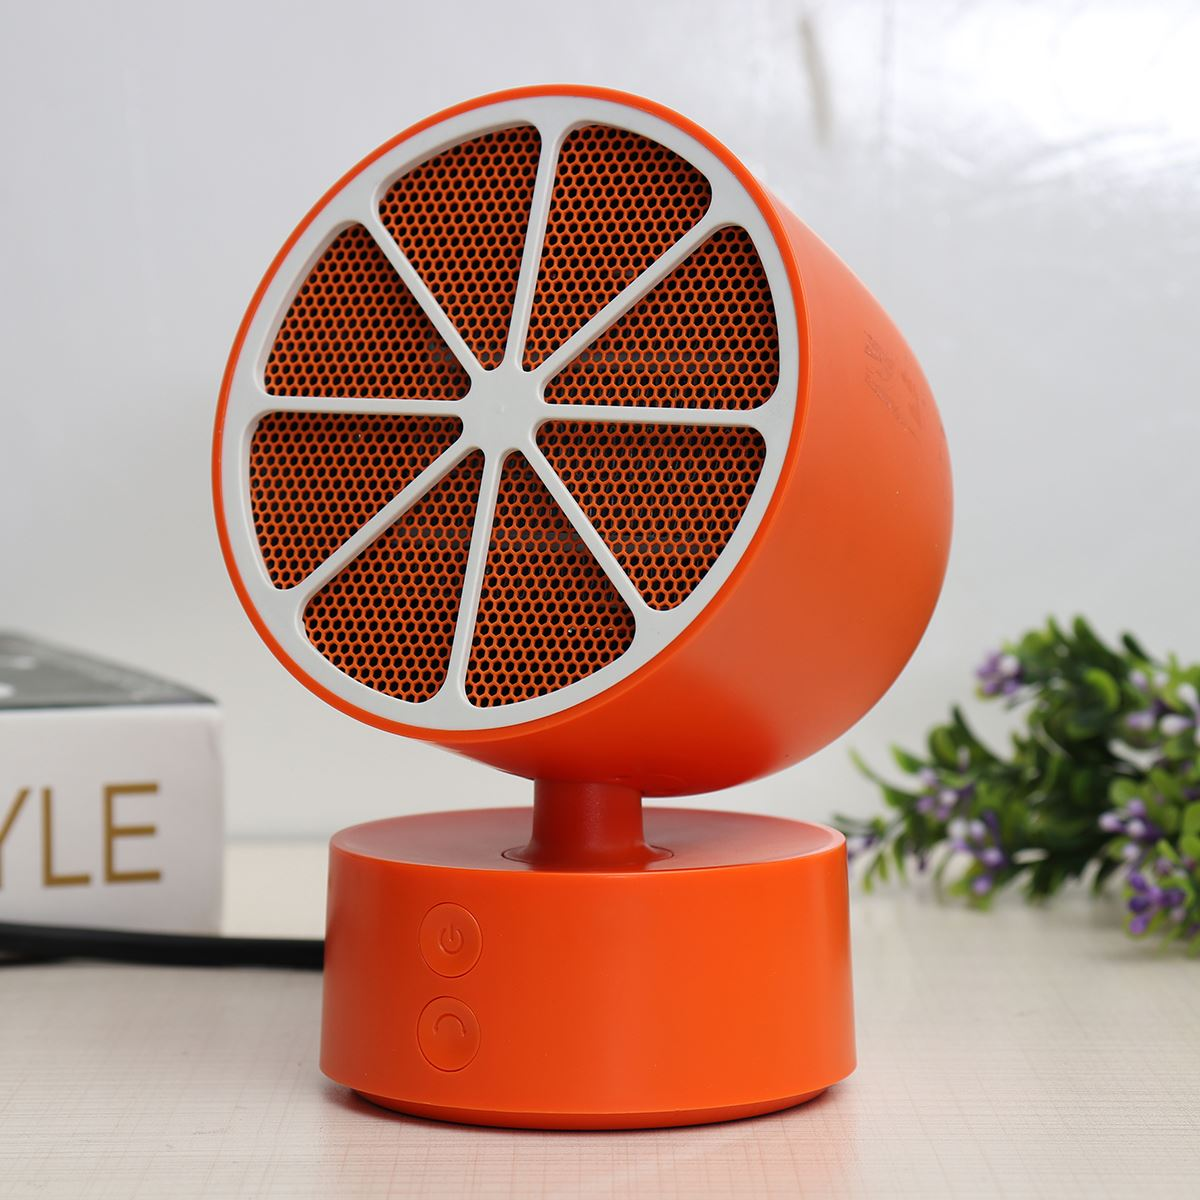 1Pcs 220V Electric Air Heater Powerful Warm Blower Portable Mini Fast Heater Fan Stove Radiator Room Warmer for home for Office 220v 3 gear mini electric warm air blower electric air heater room fan heater cold and warm dual purpose overheat protection